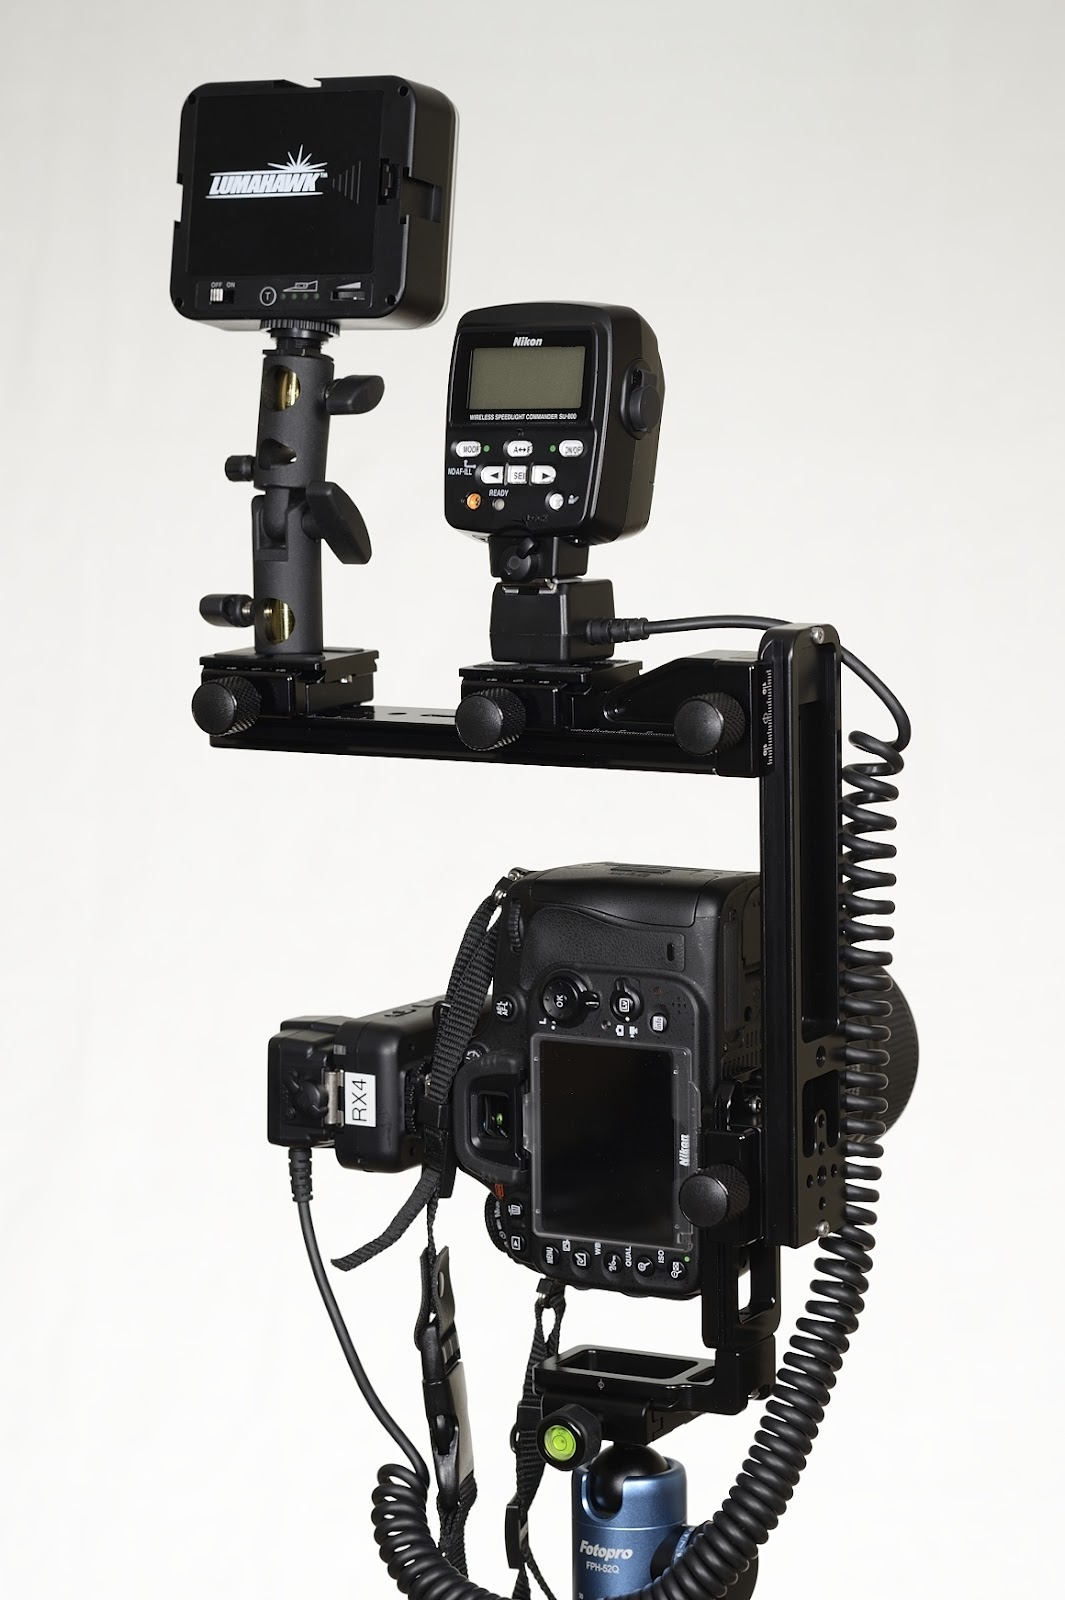 Hejnar Photo Modular Flash Bracket rear view